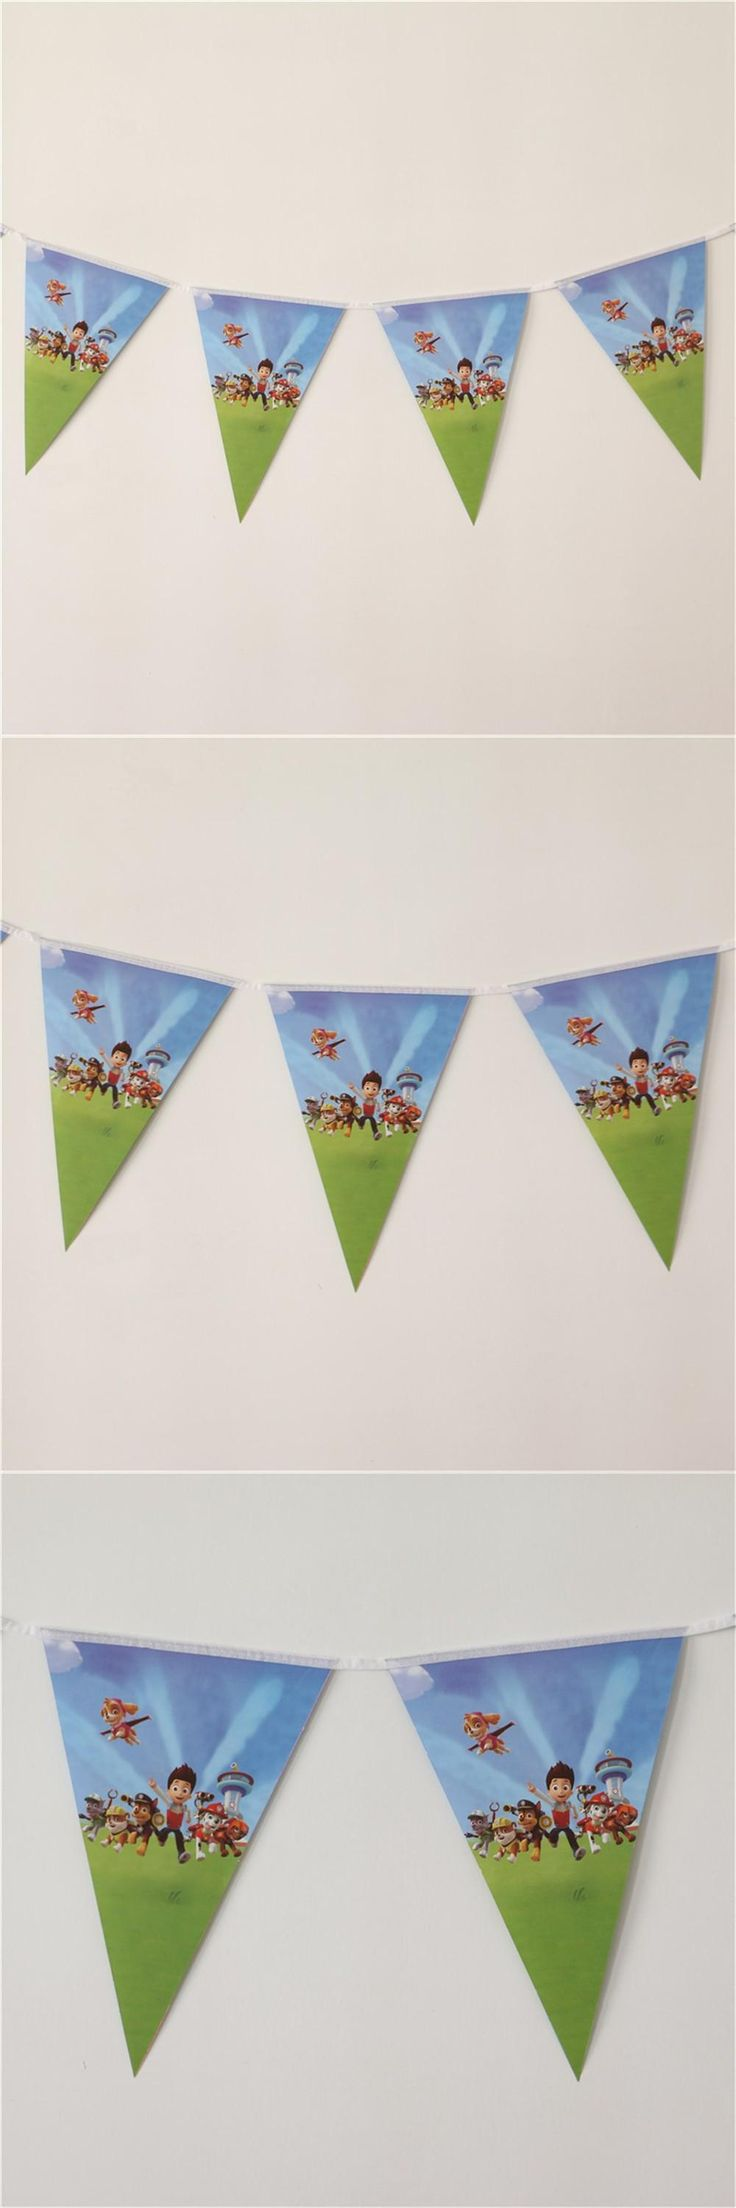 [Visit to Buy] 10Flags/Pack Kids Birthday Party Supplies puppy patrol Party Pennant Bunting Birthday Flag Banners Boys Event Party Supplies  #Advertisement